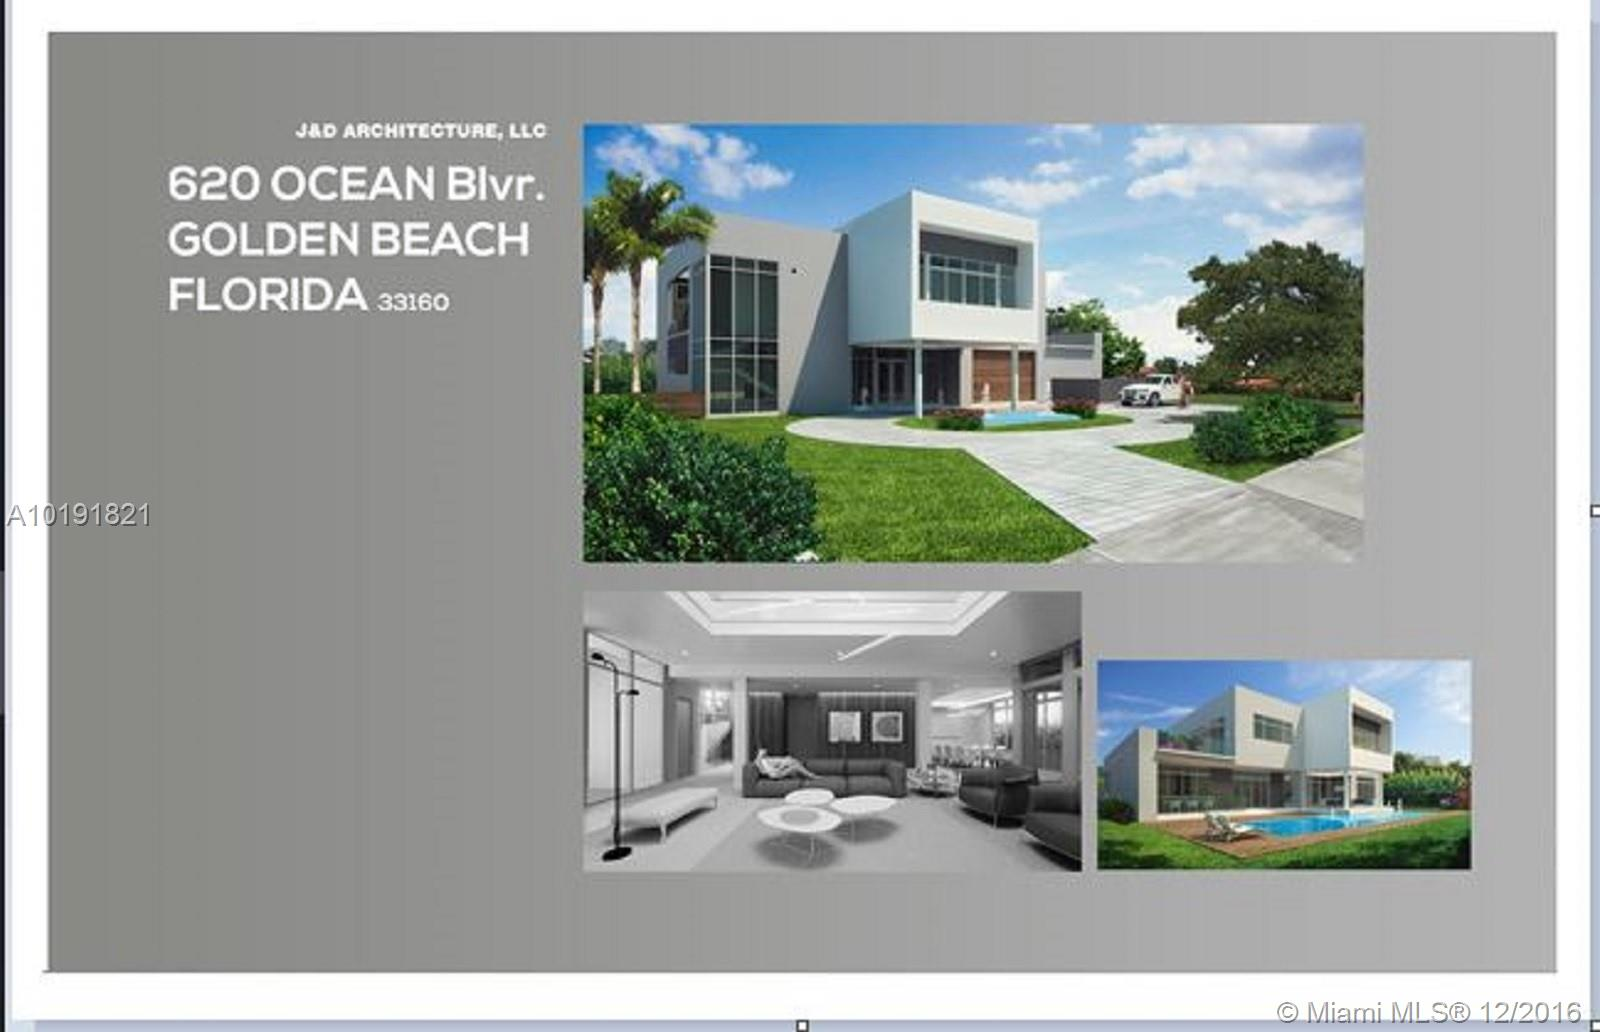 """Stunning Modern """"Over the Top"""". New Construction. Designer finishes with the latest modern appliances and exquisite finishes. Large lot across from Golden Beach's oceanfront mansions. Expected completion 2022."""